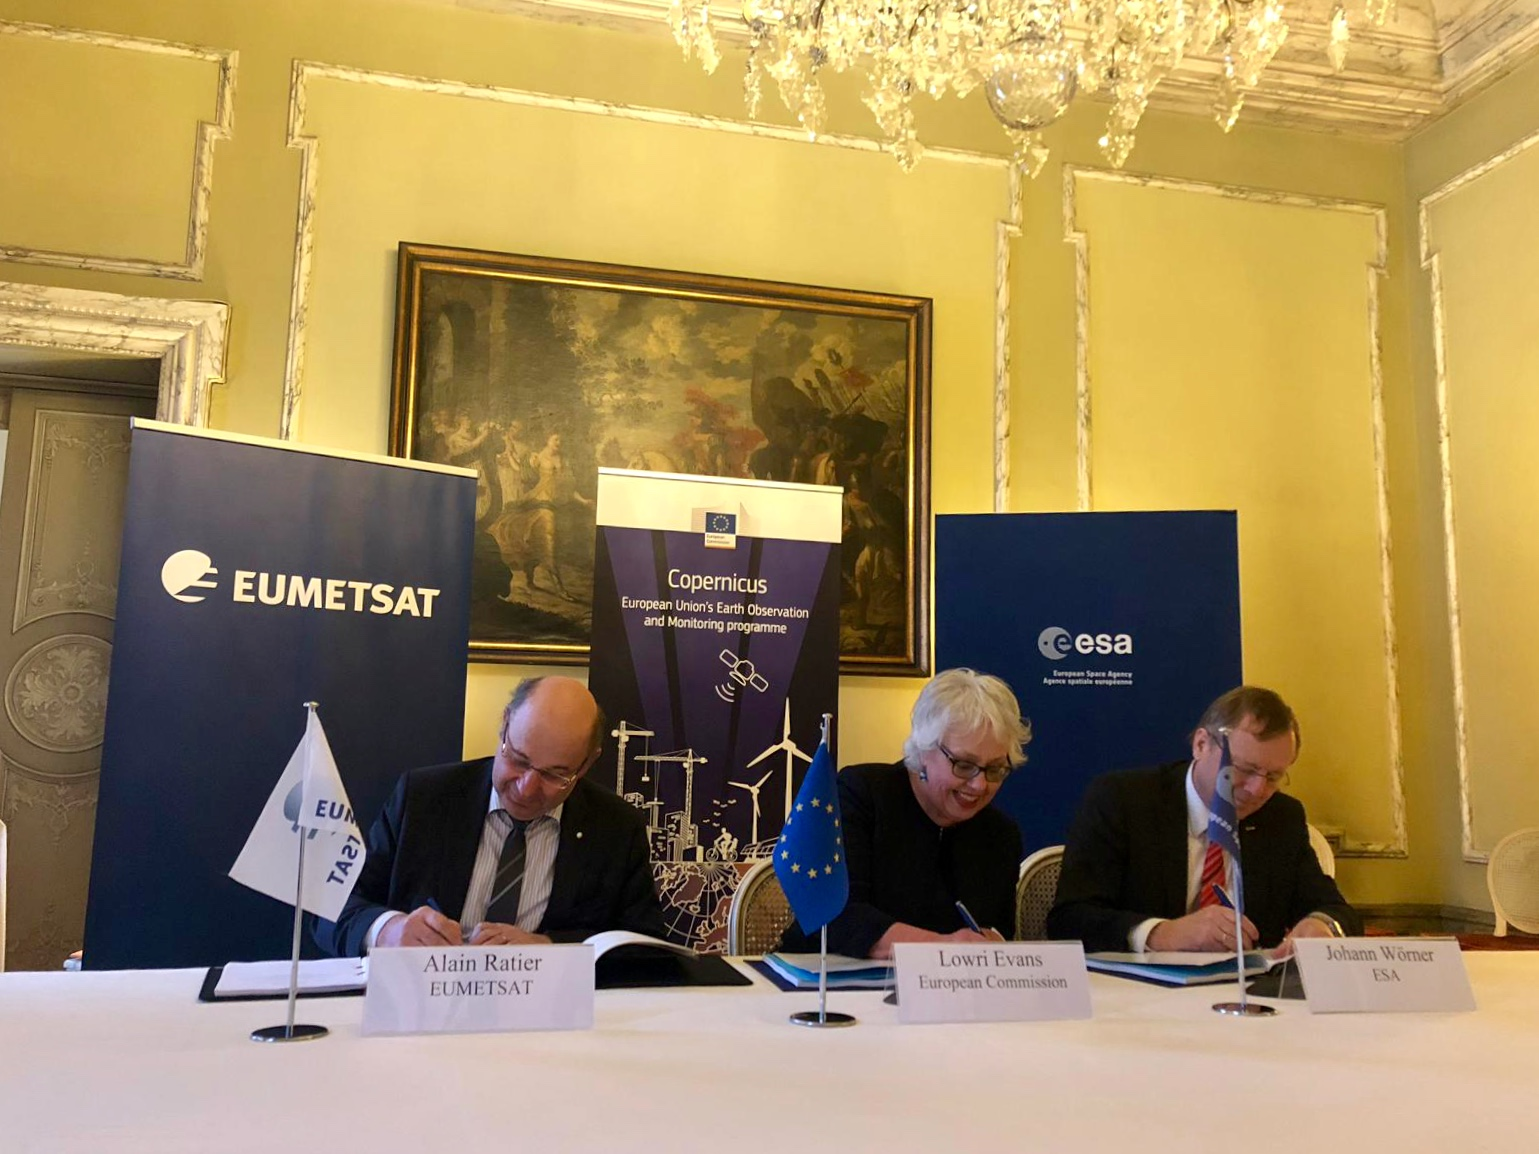 Signatories of the agreement (left to right) Alain Ratier, EUMETSAT, Lowri Evans, EC, Jan Woerner, ESA